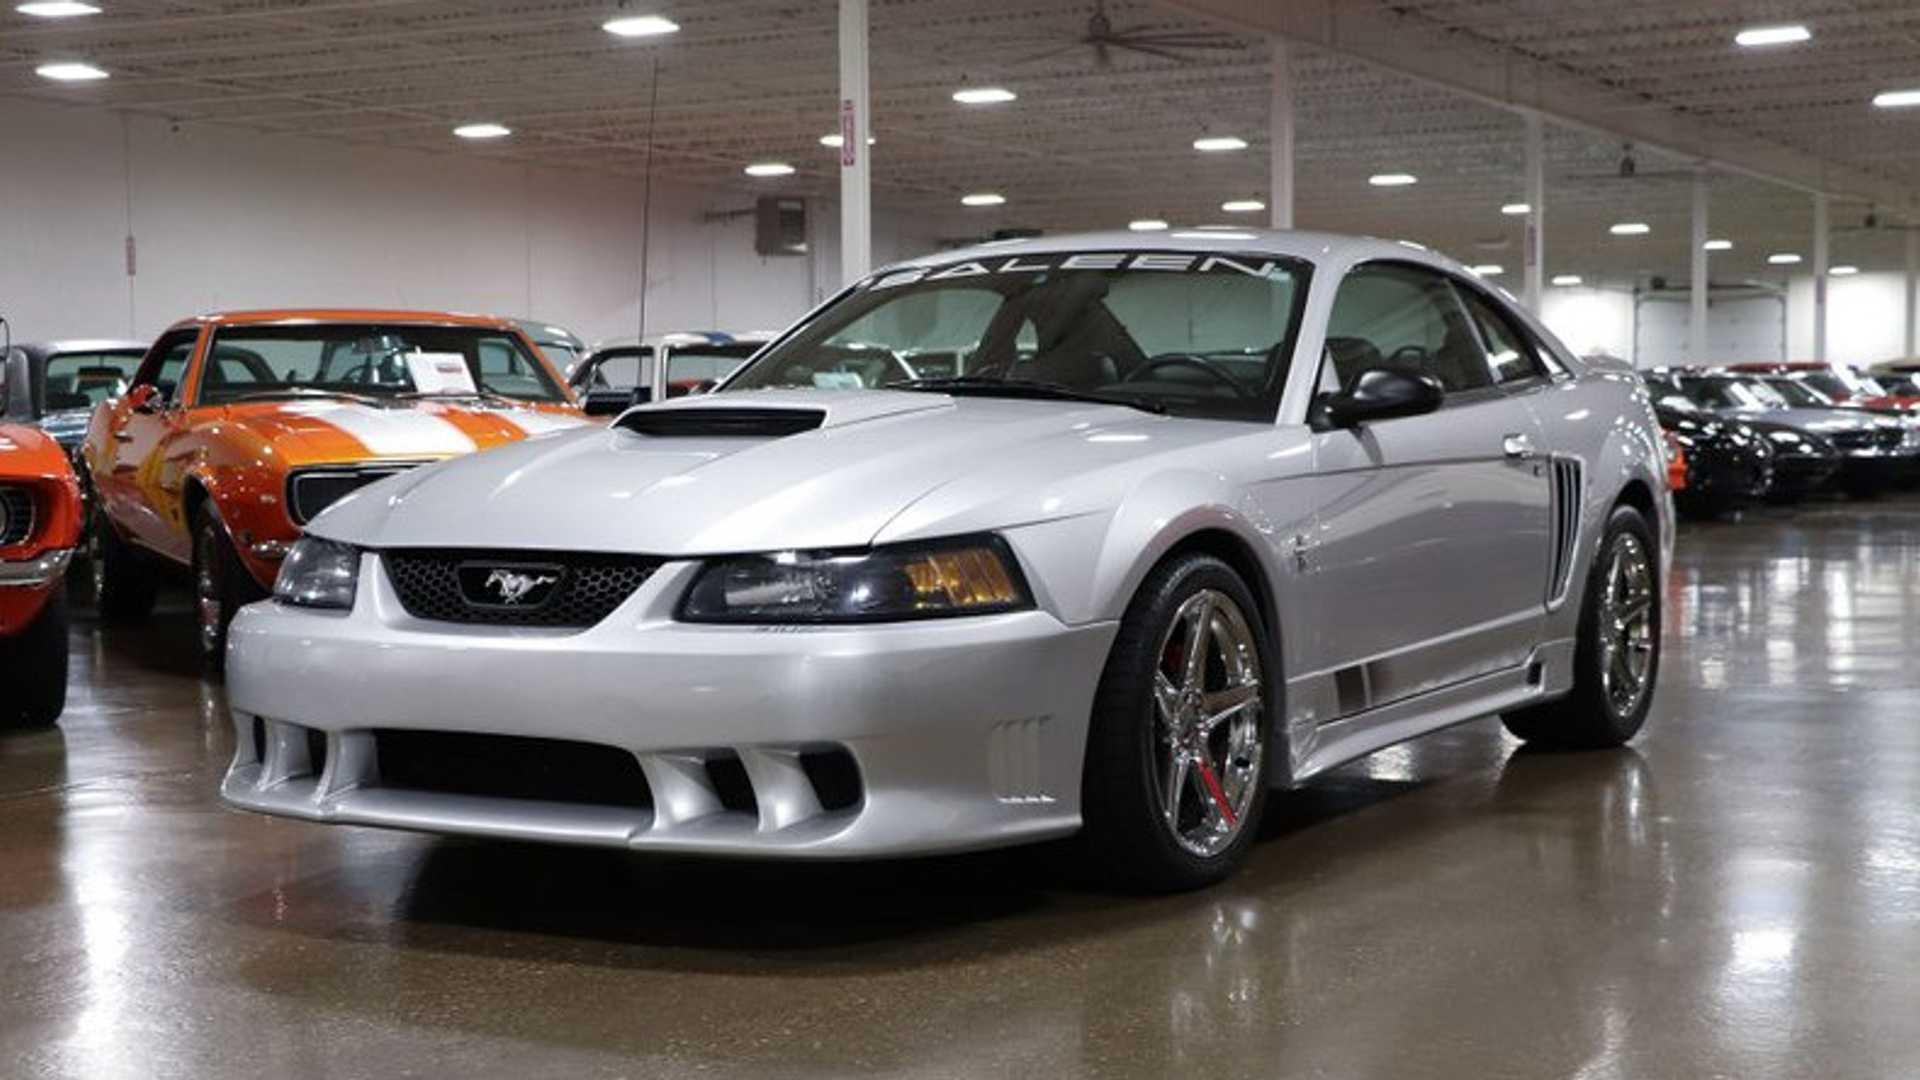 Grab This Low Mileage 2001 Saleen Mustang S 281sc For 23k